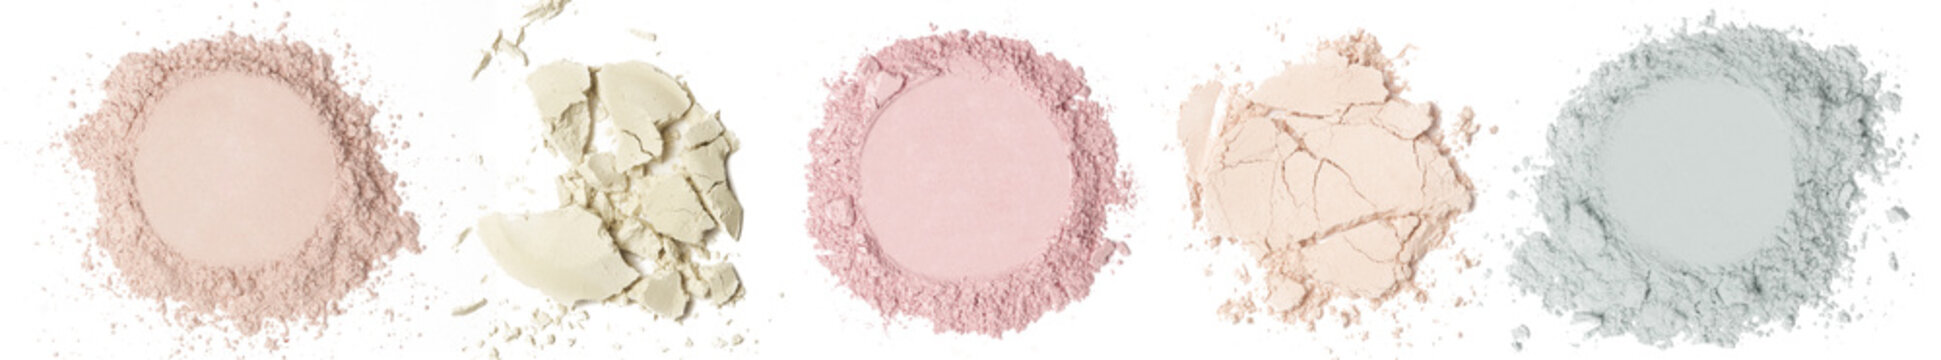 Set of cosmetic or make up powder samples isolated on white.